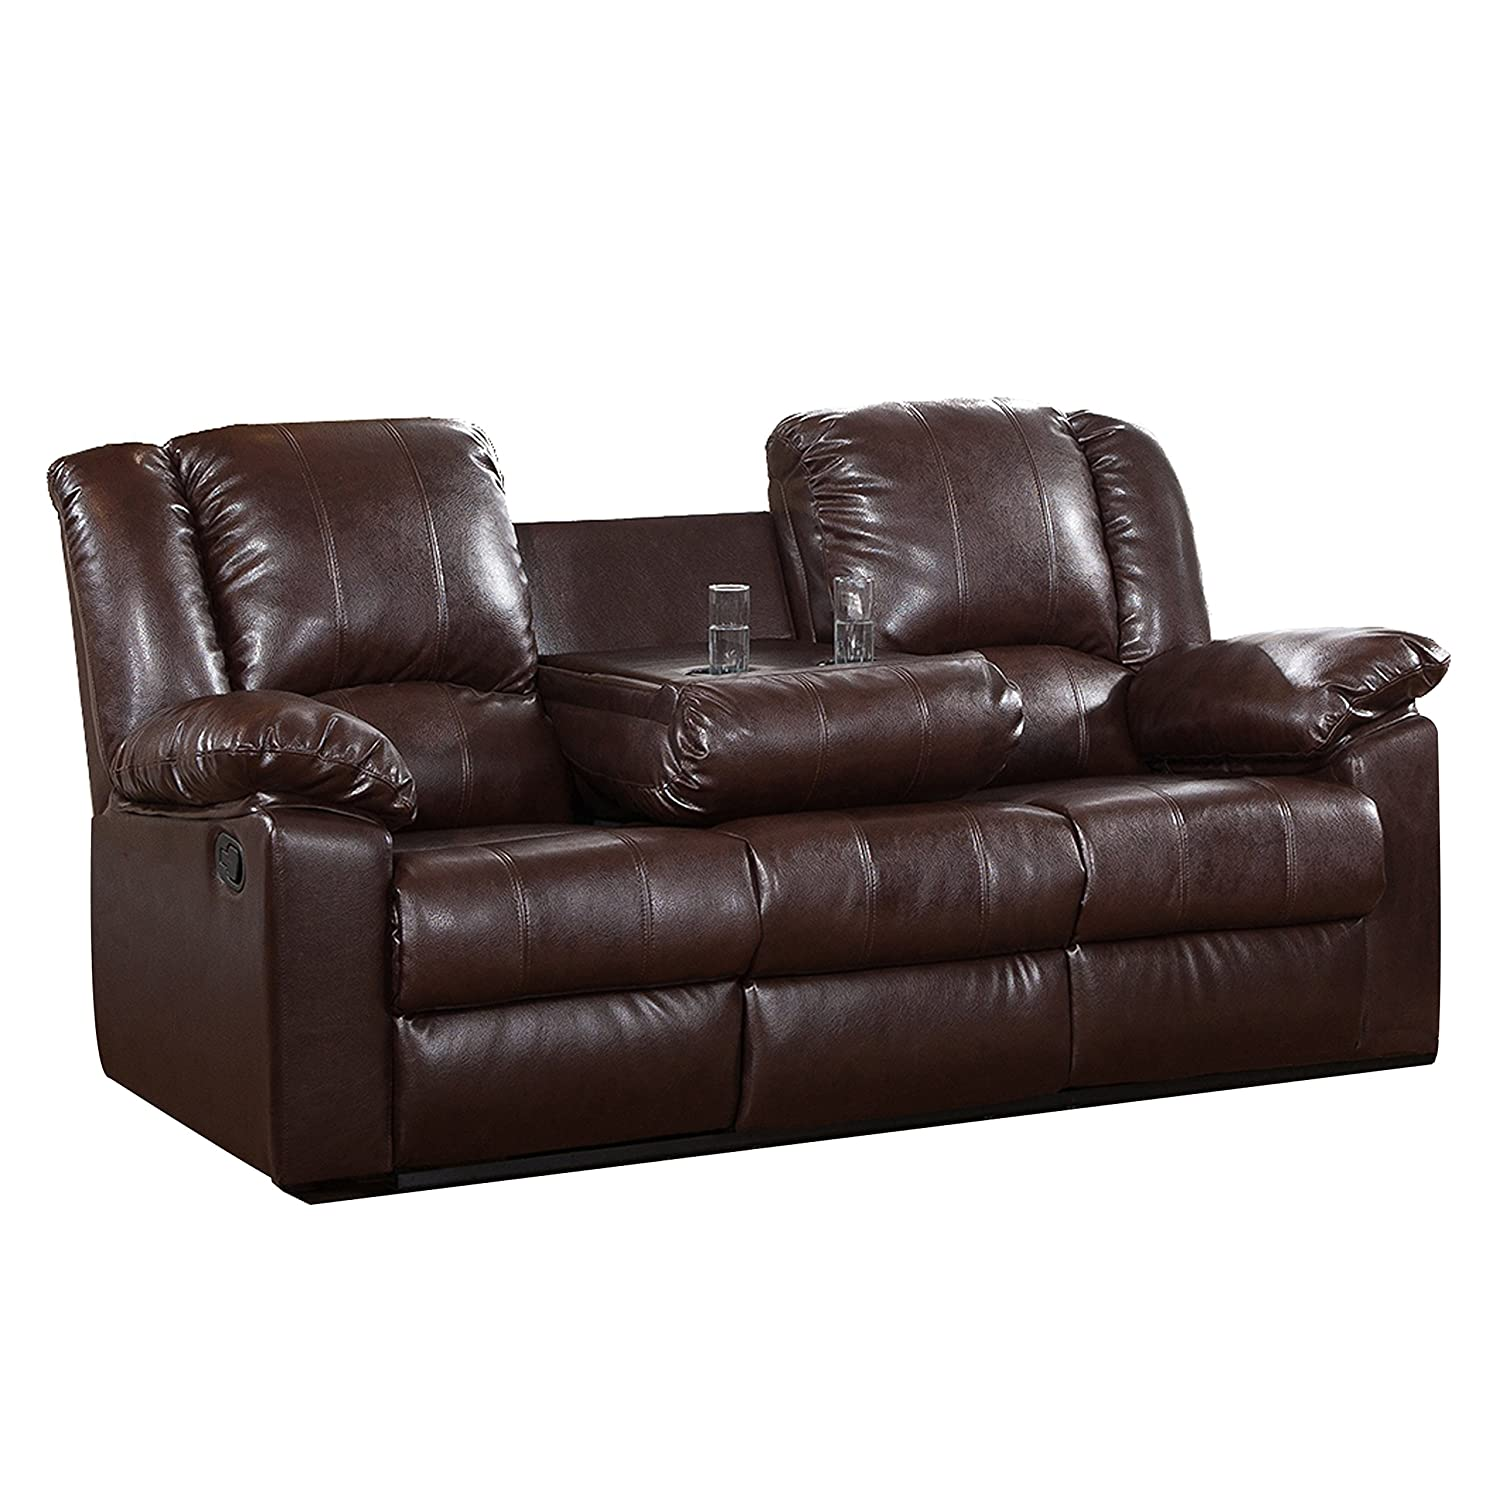 Amazon Milton Greens Stars Burgas Reclining Sofa with Drop